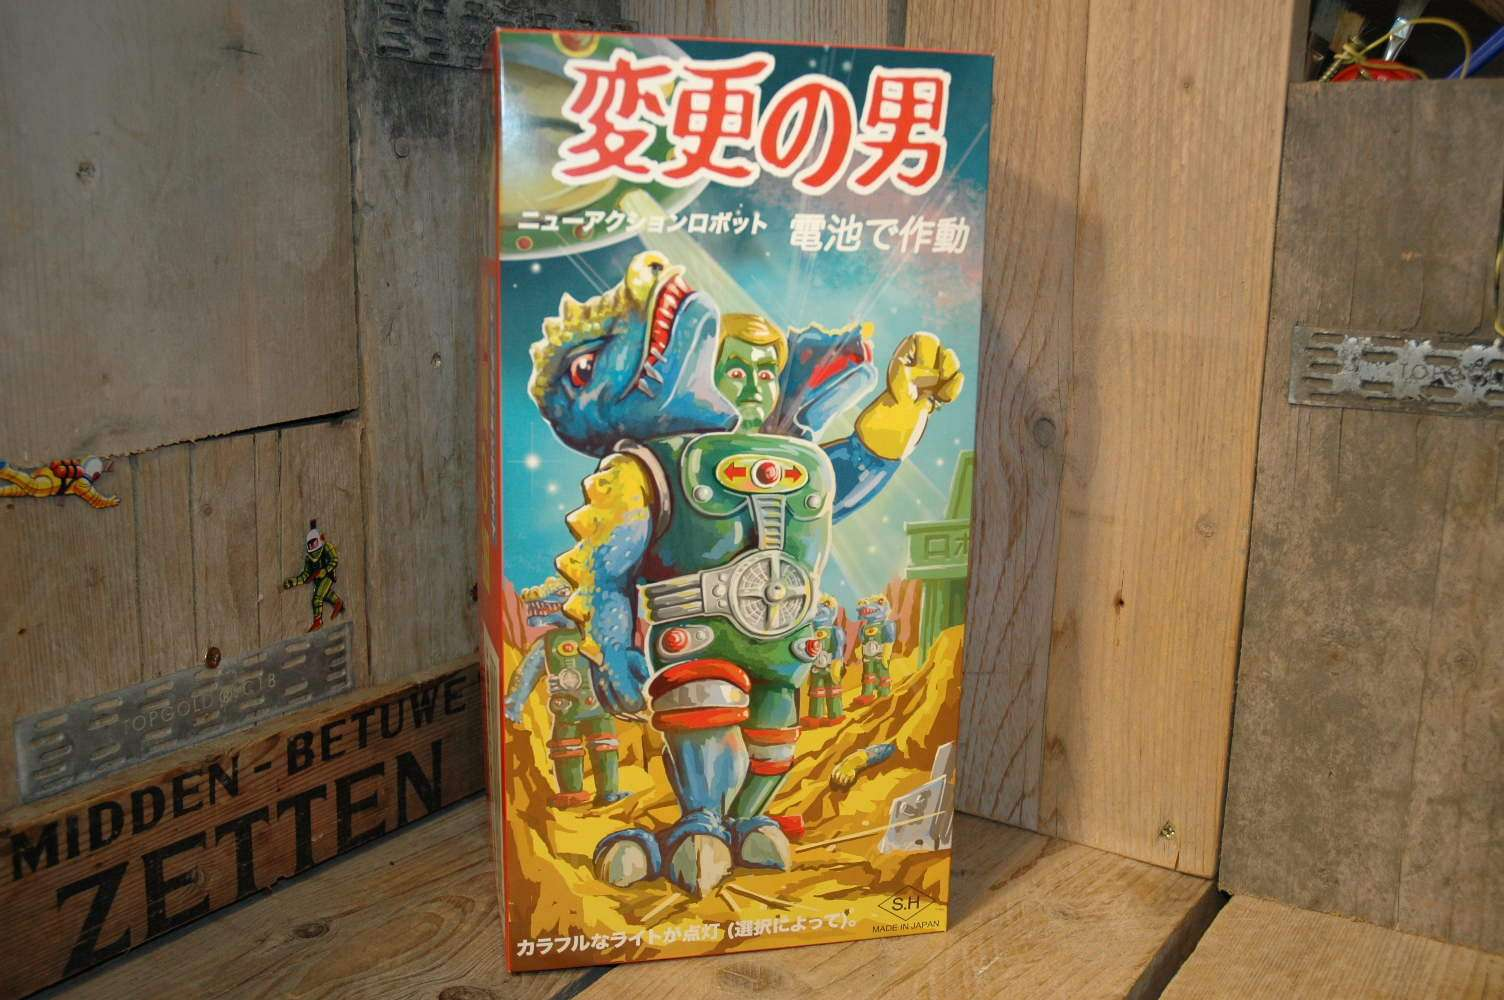 Marumiya SH - Box for Changeman Robot